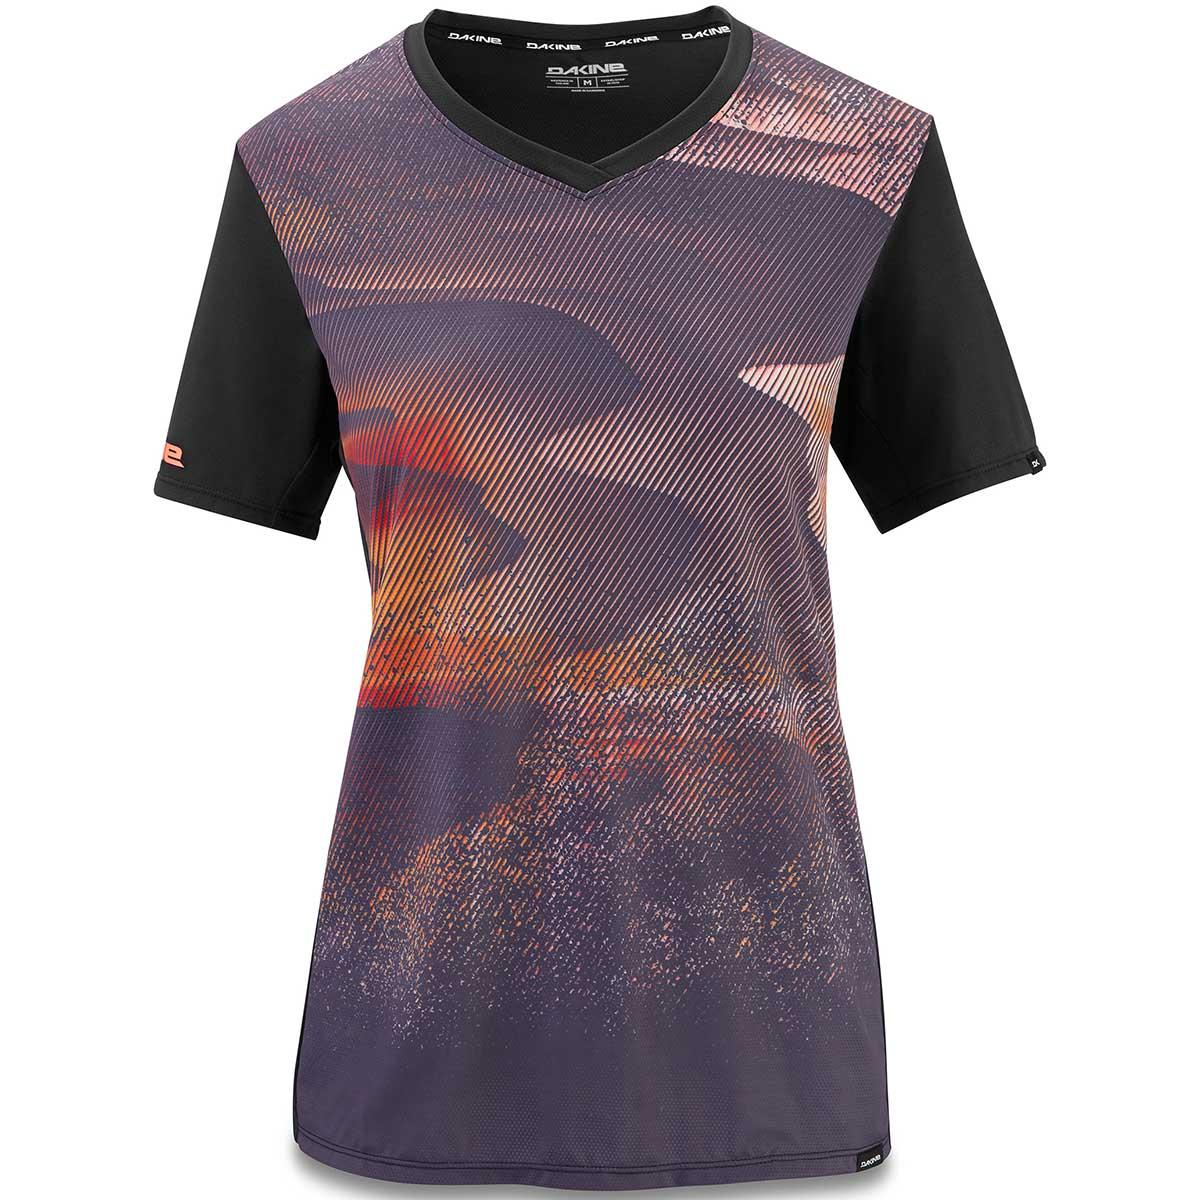 Dakine women's Cadence SS Bike Jersey in Electric Dune